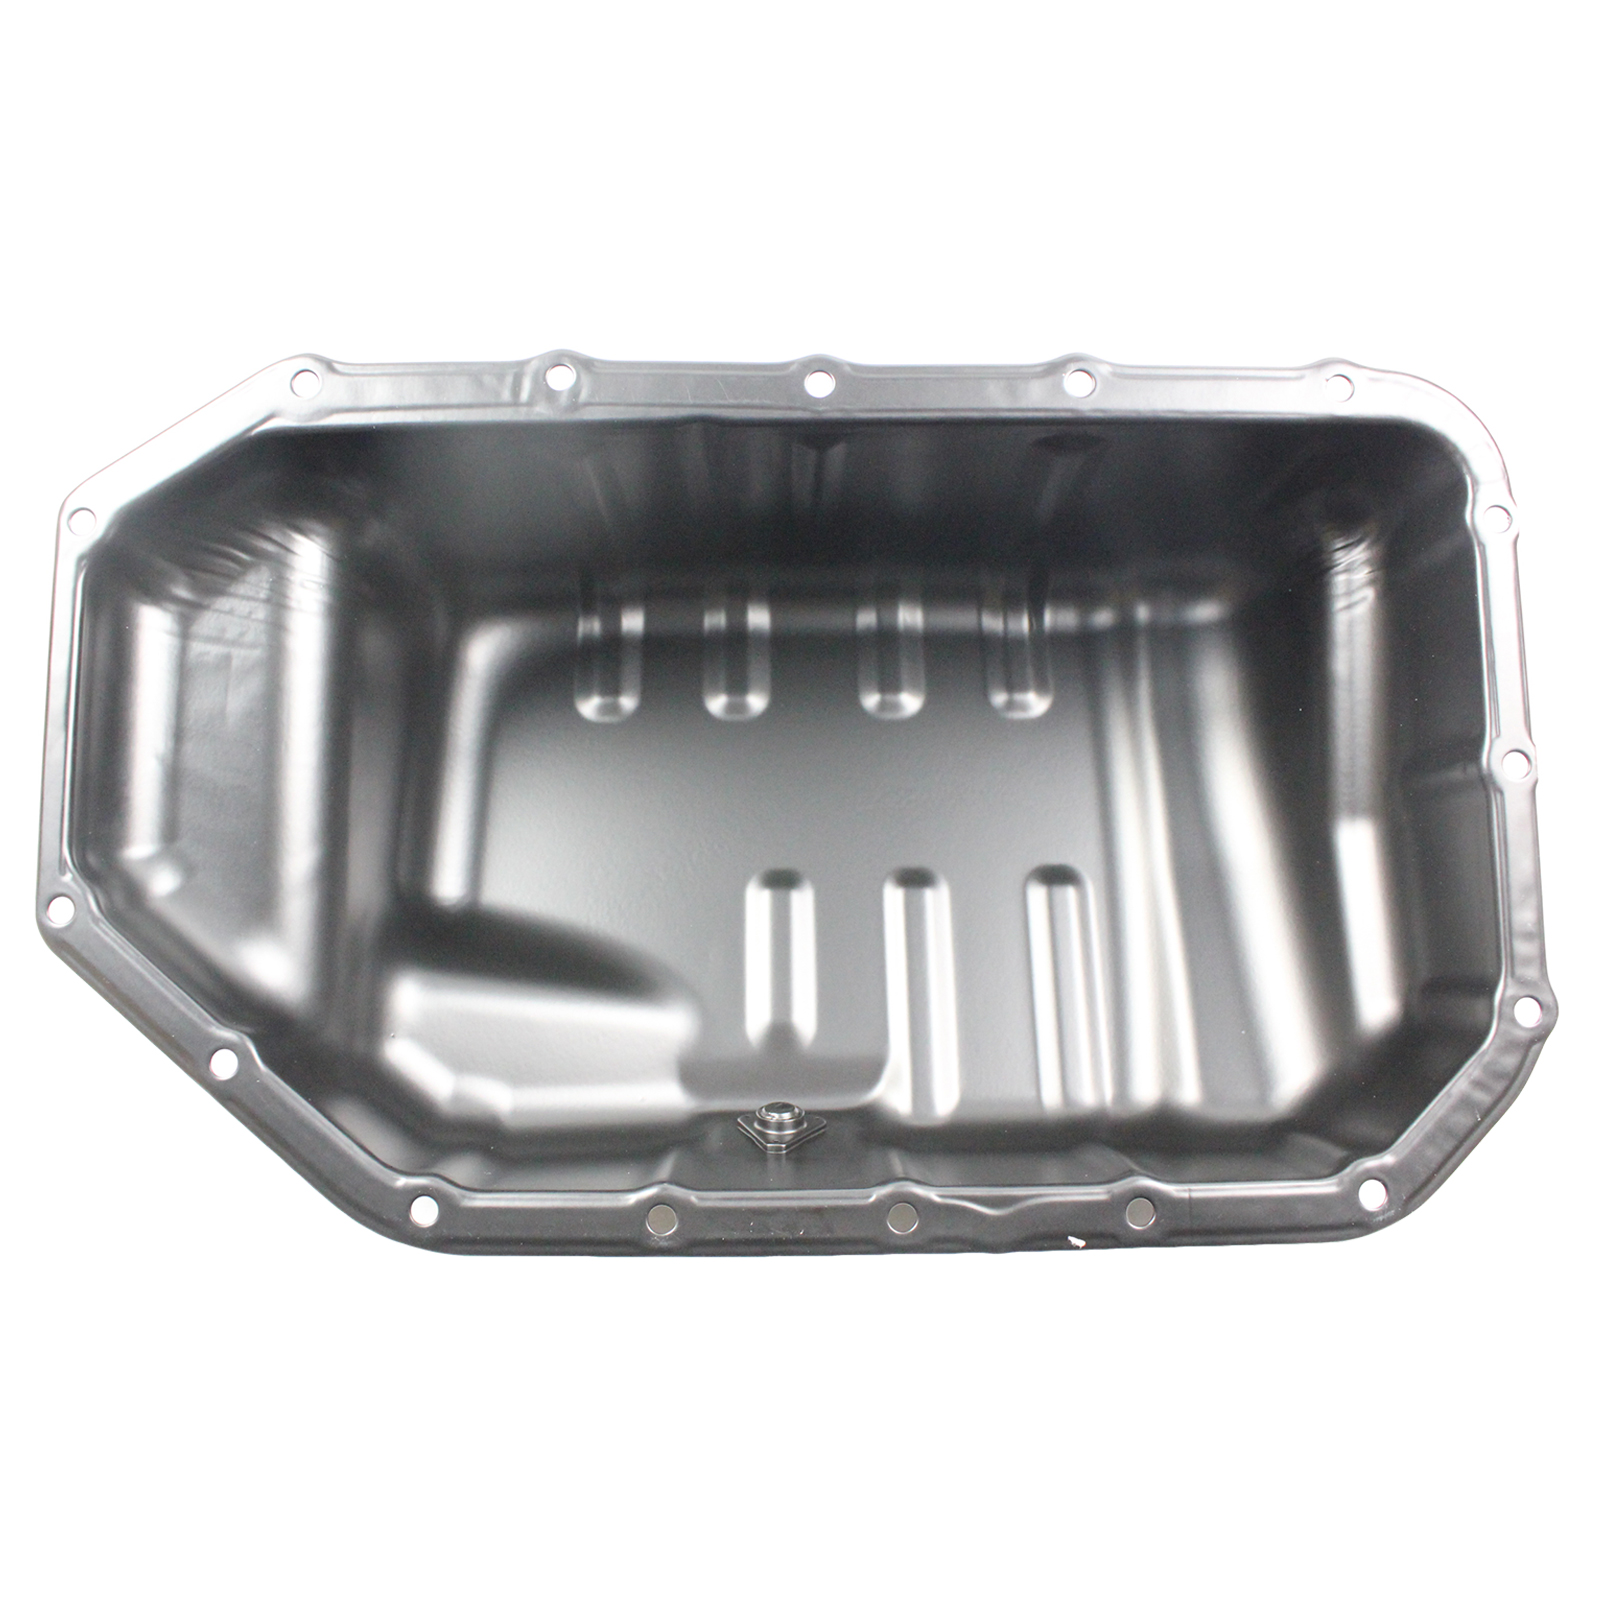 New Engine Oil Pan For 2004-2008 Acura TSX 2.4L 11200-RBB